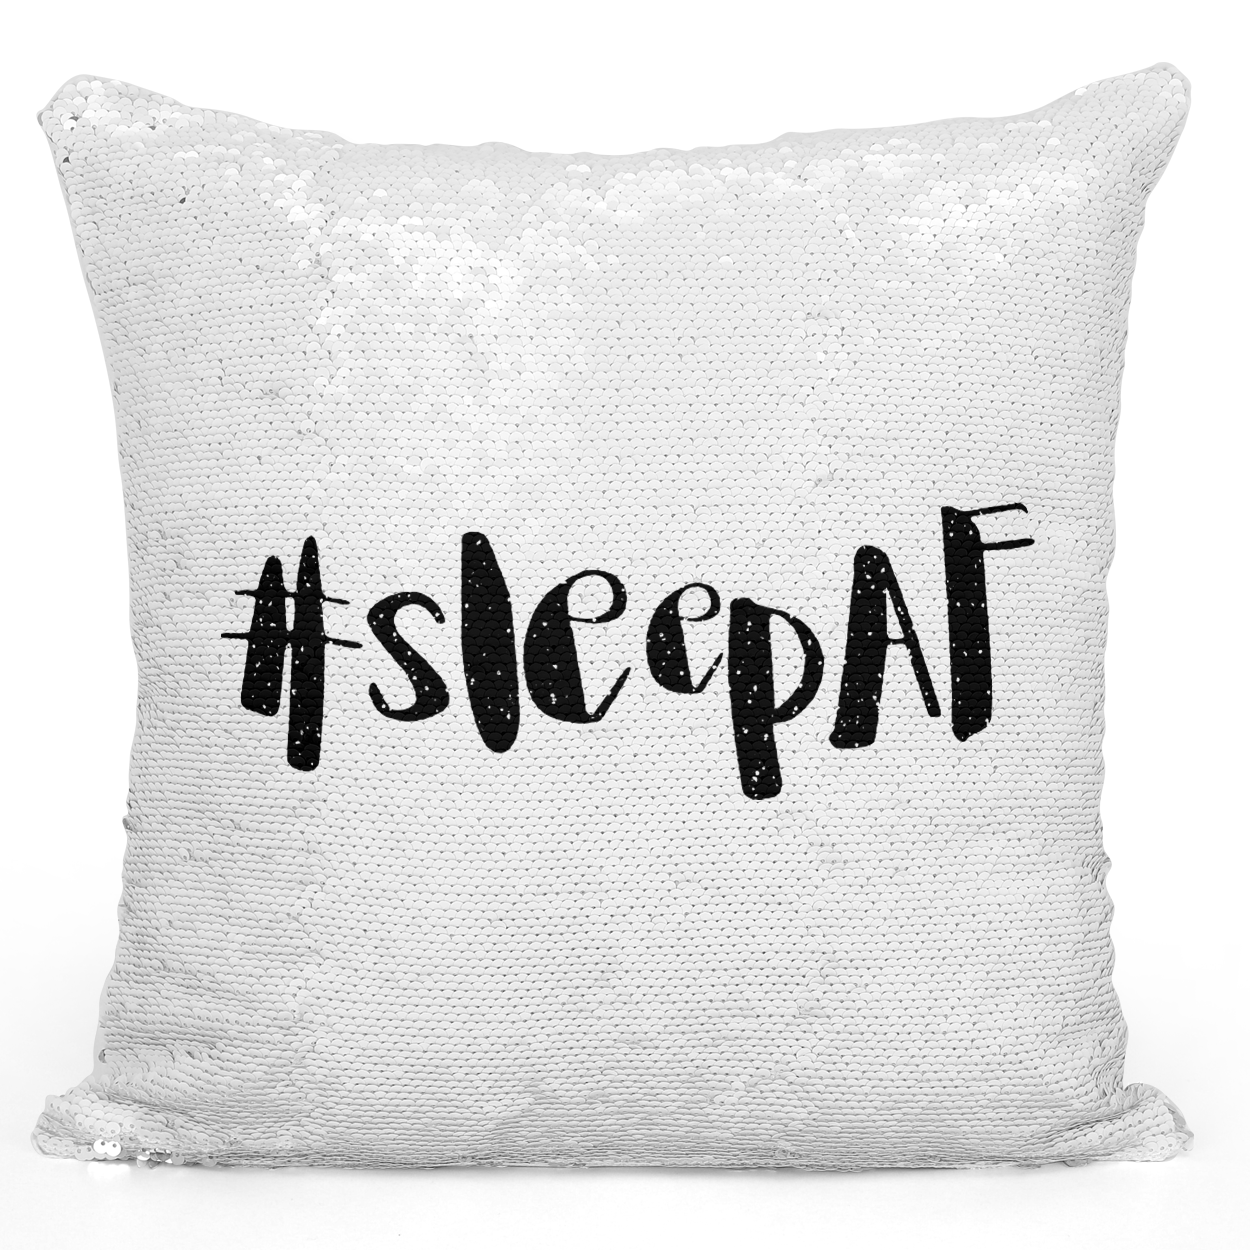 Sequin Pillow Magic Mermaid Throw Pillow Hashtag Sleep AF #Sleefaf - Colorful With White 16 x 16 inch Square Home Accent Pillow Sofa Cushion Loud Universe